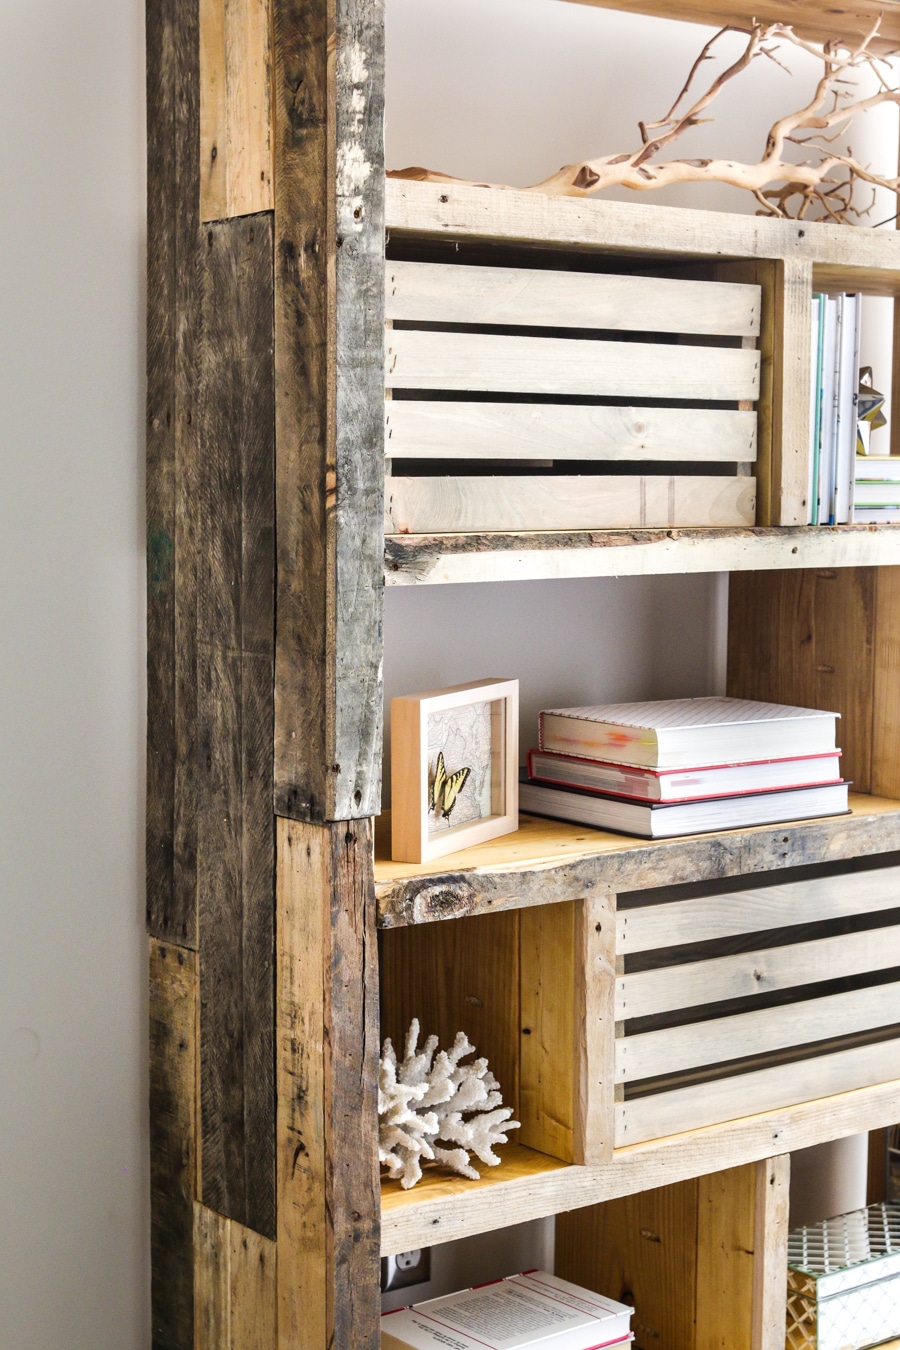 How To Build A Pallet Bookshelf